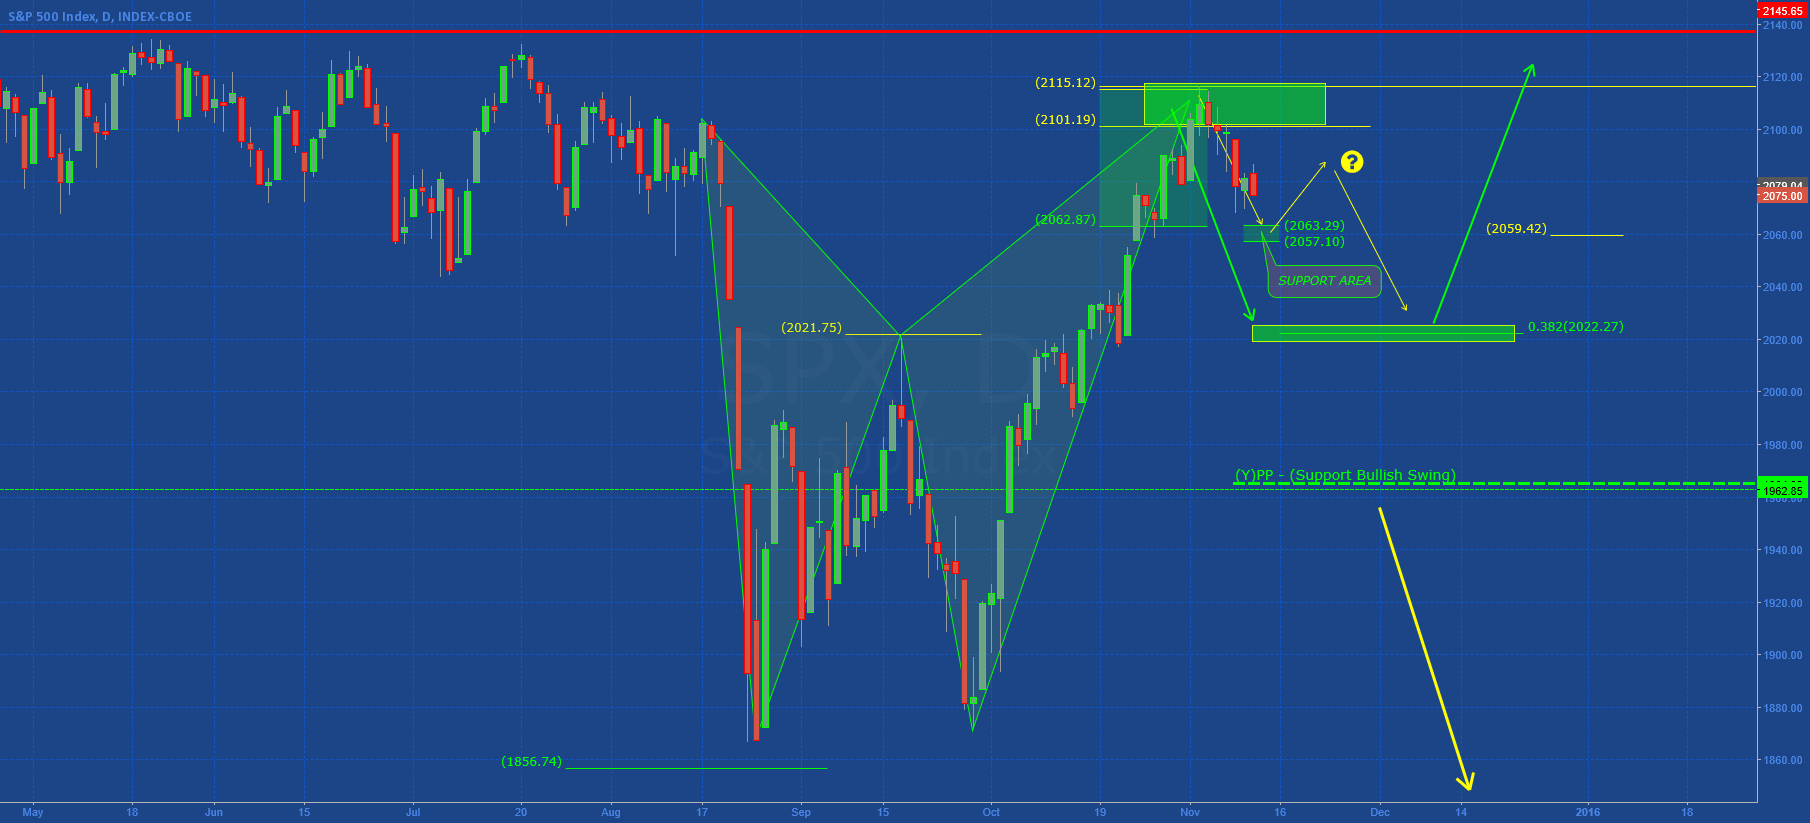 SP500: UPDATES ANALYSIS